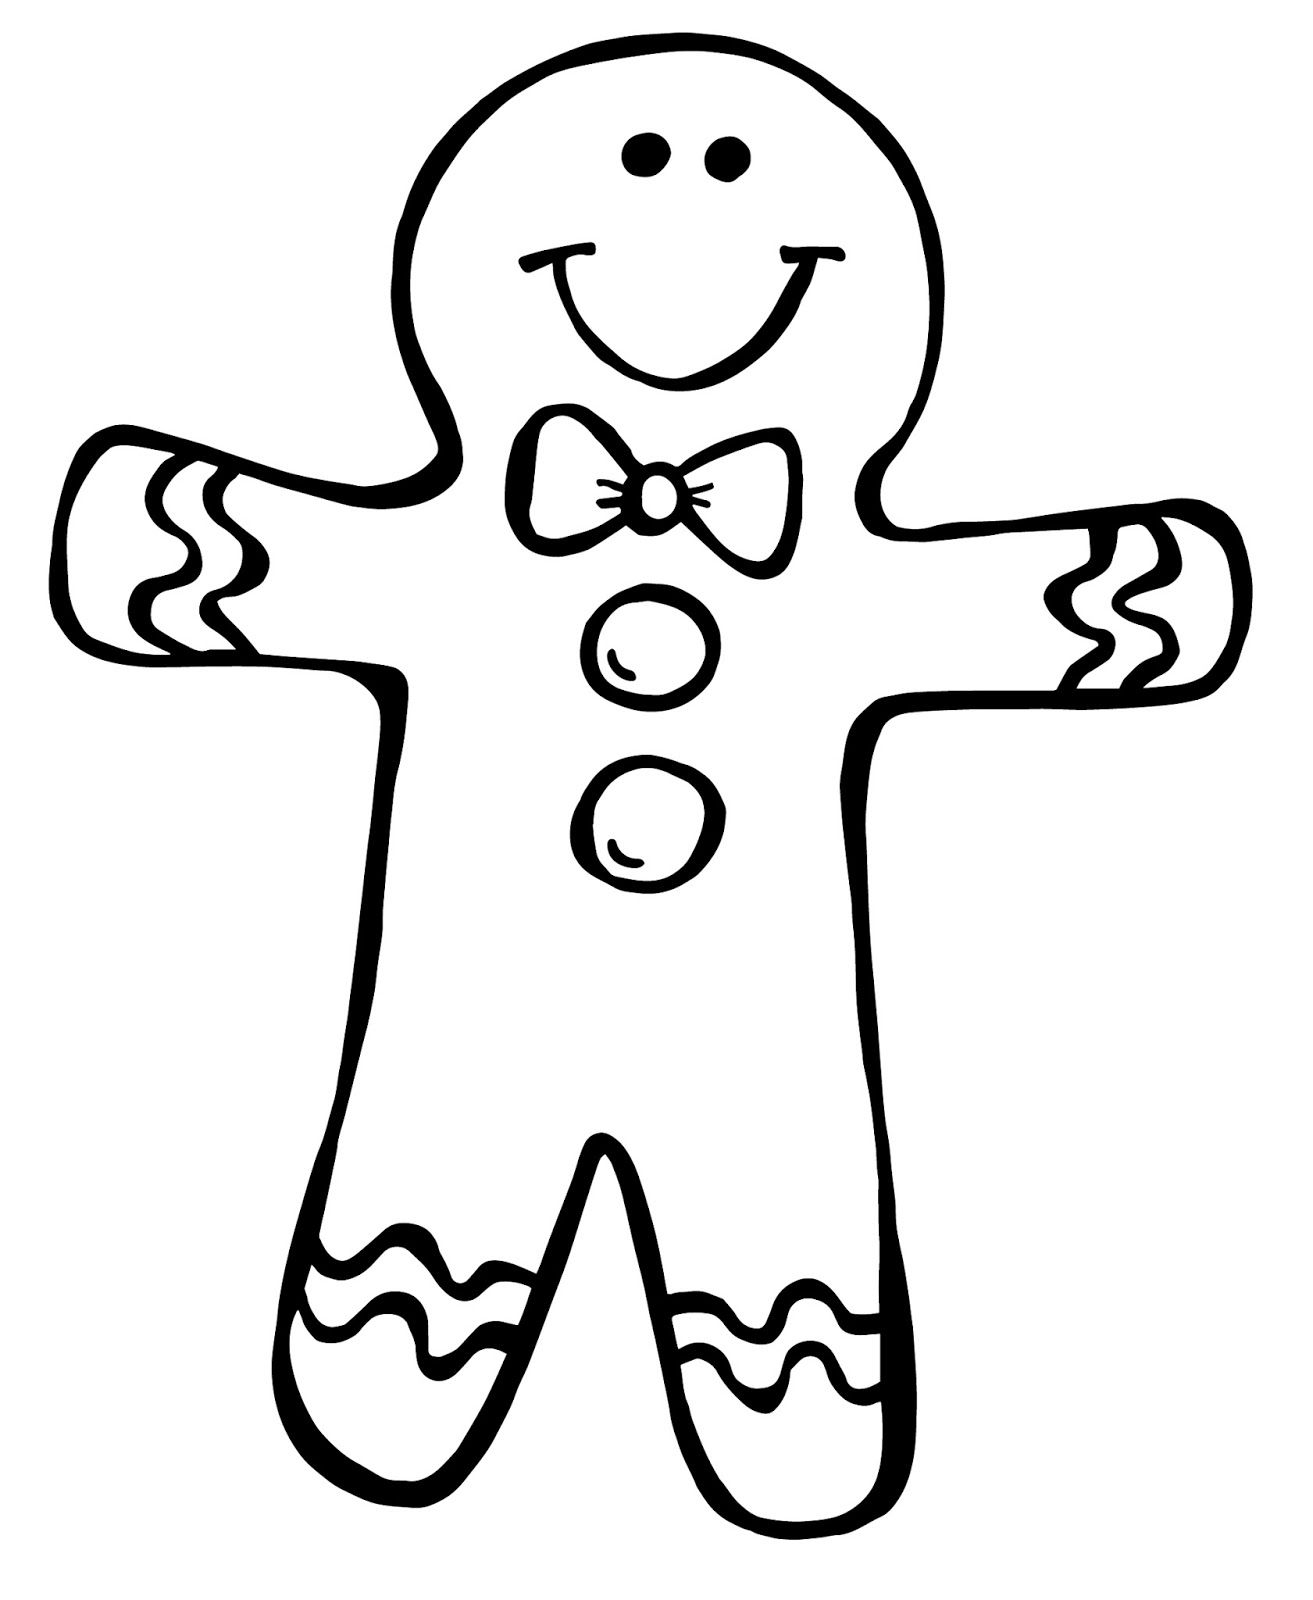 how to draw gingerbread man gingerbread man drawing at getdrawings free download how to man draw gingerbread